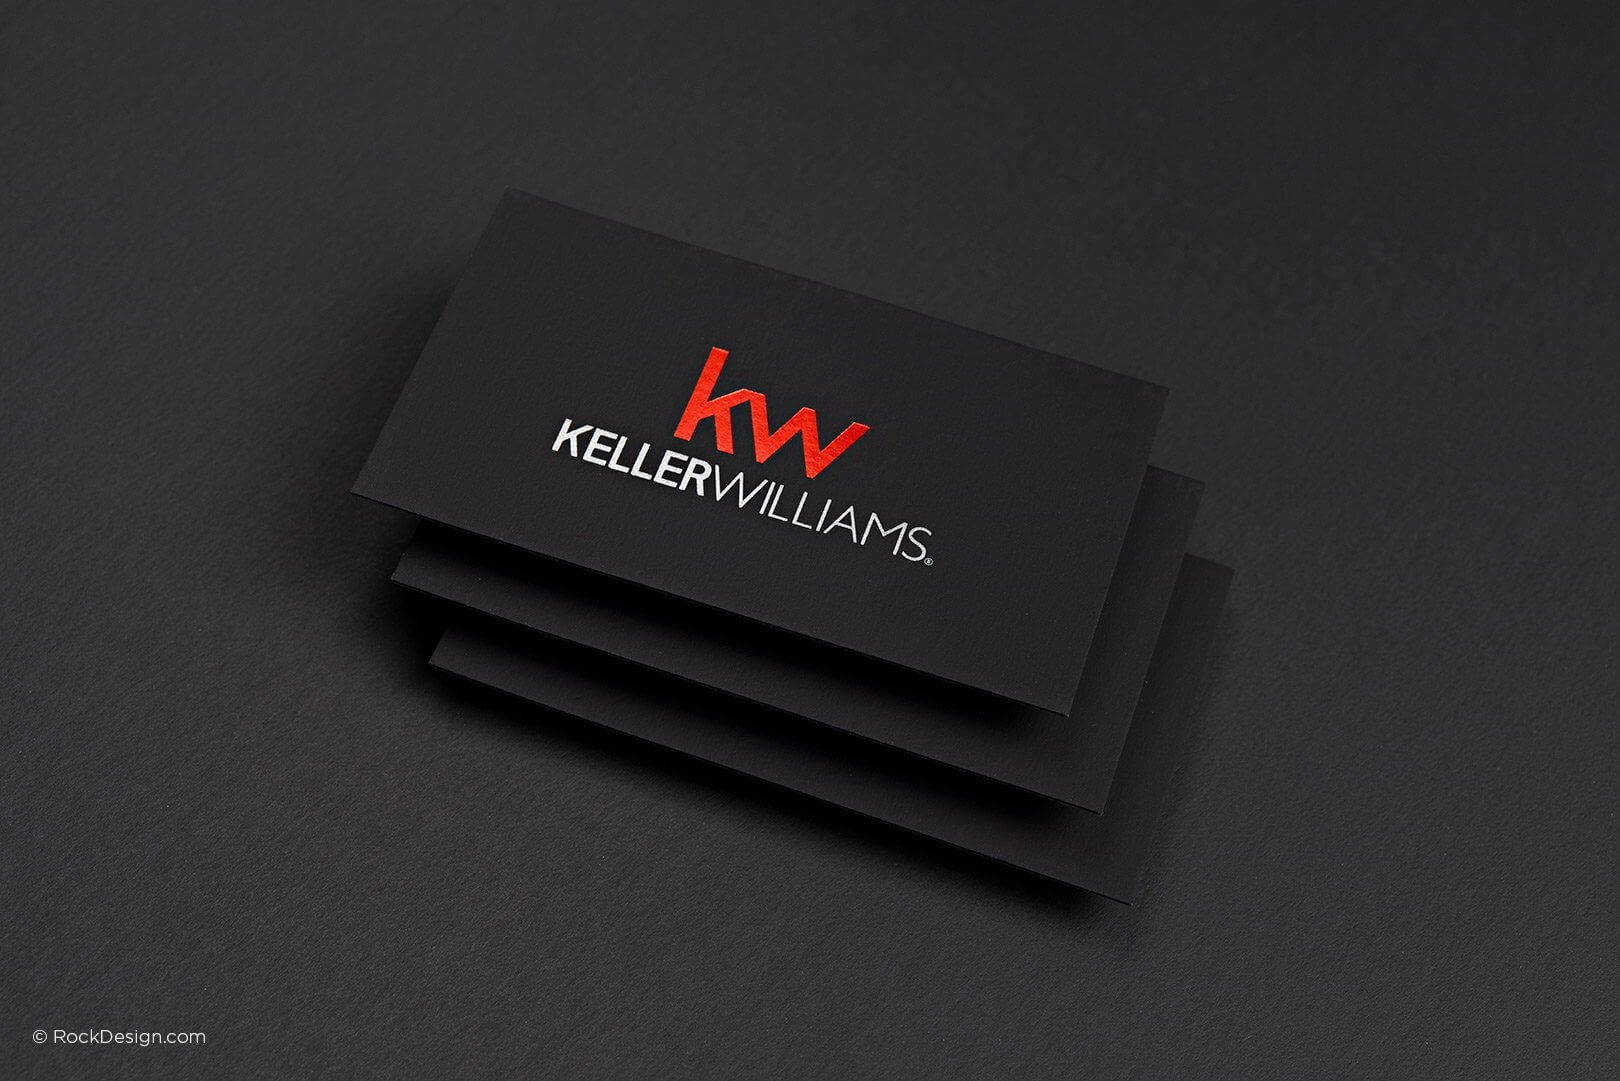 Keller Williams Business Card With Regard To Keller Williams Business Card Templates